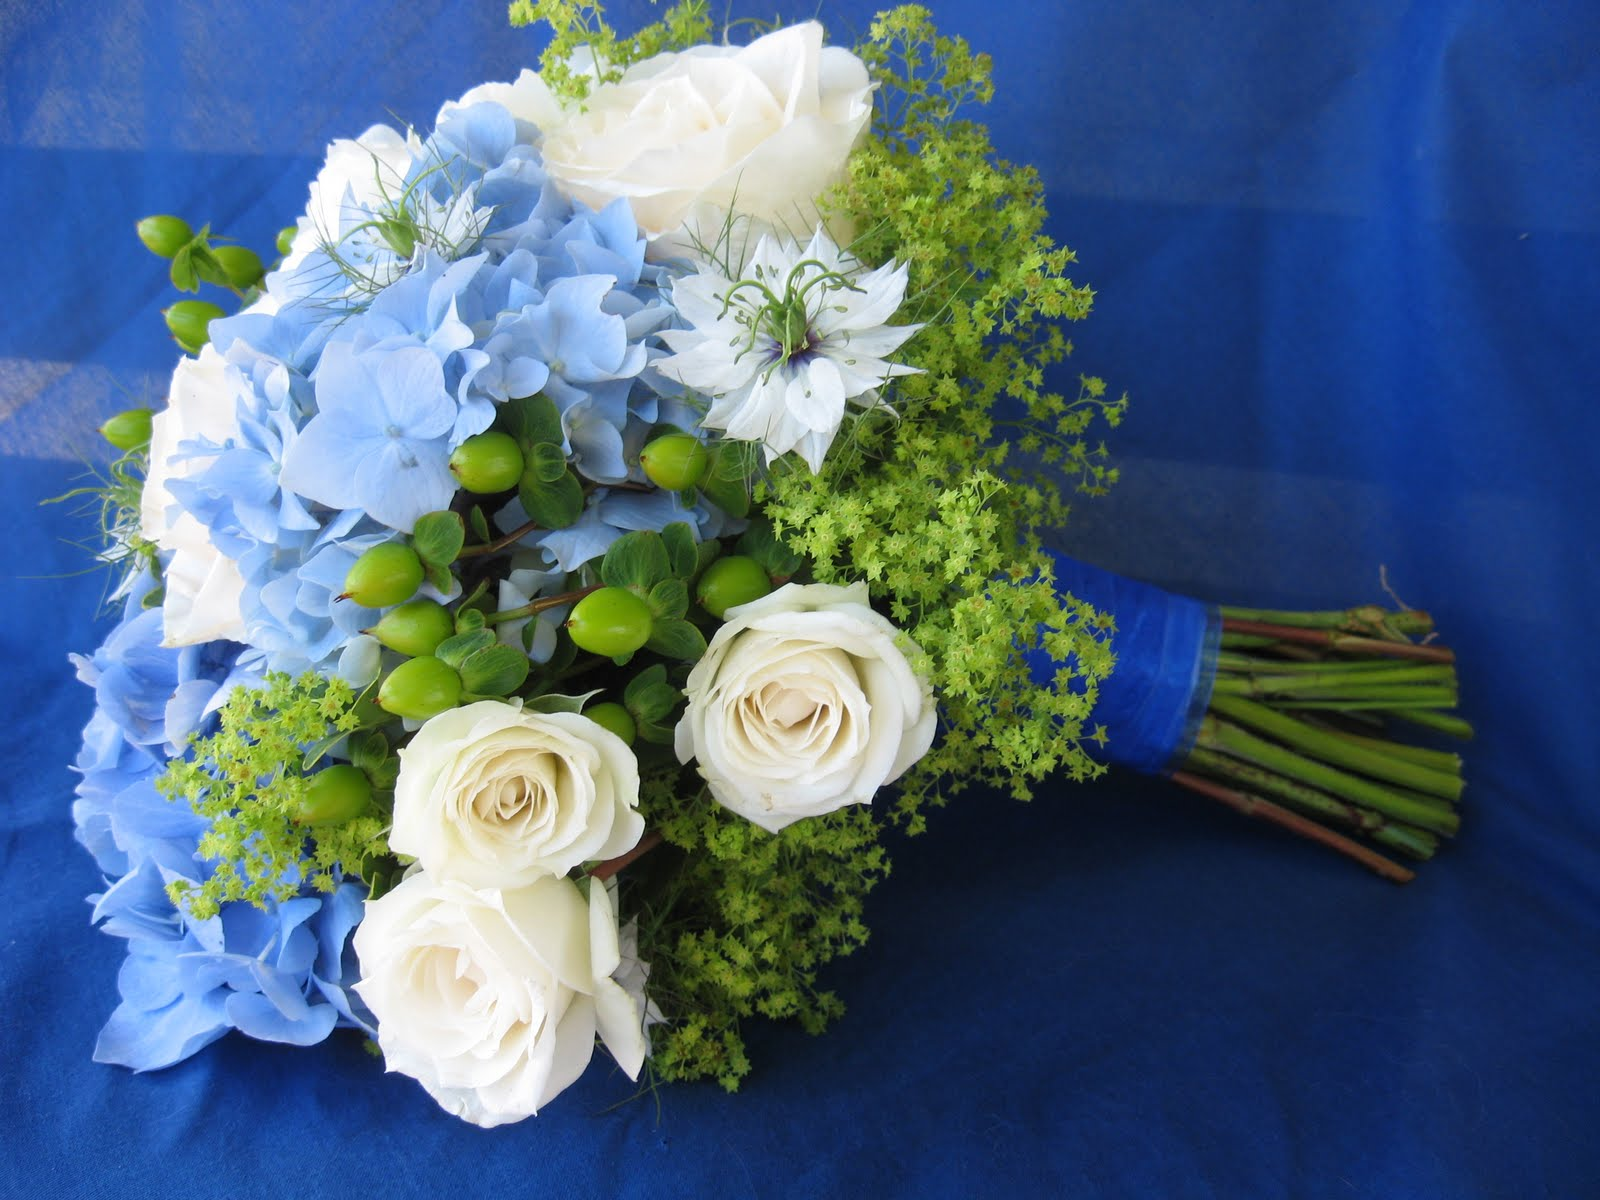 Blue Flowers Names For Weddings 29 Hd Wallpaper Hdflowerwallpaper